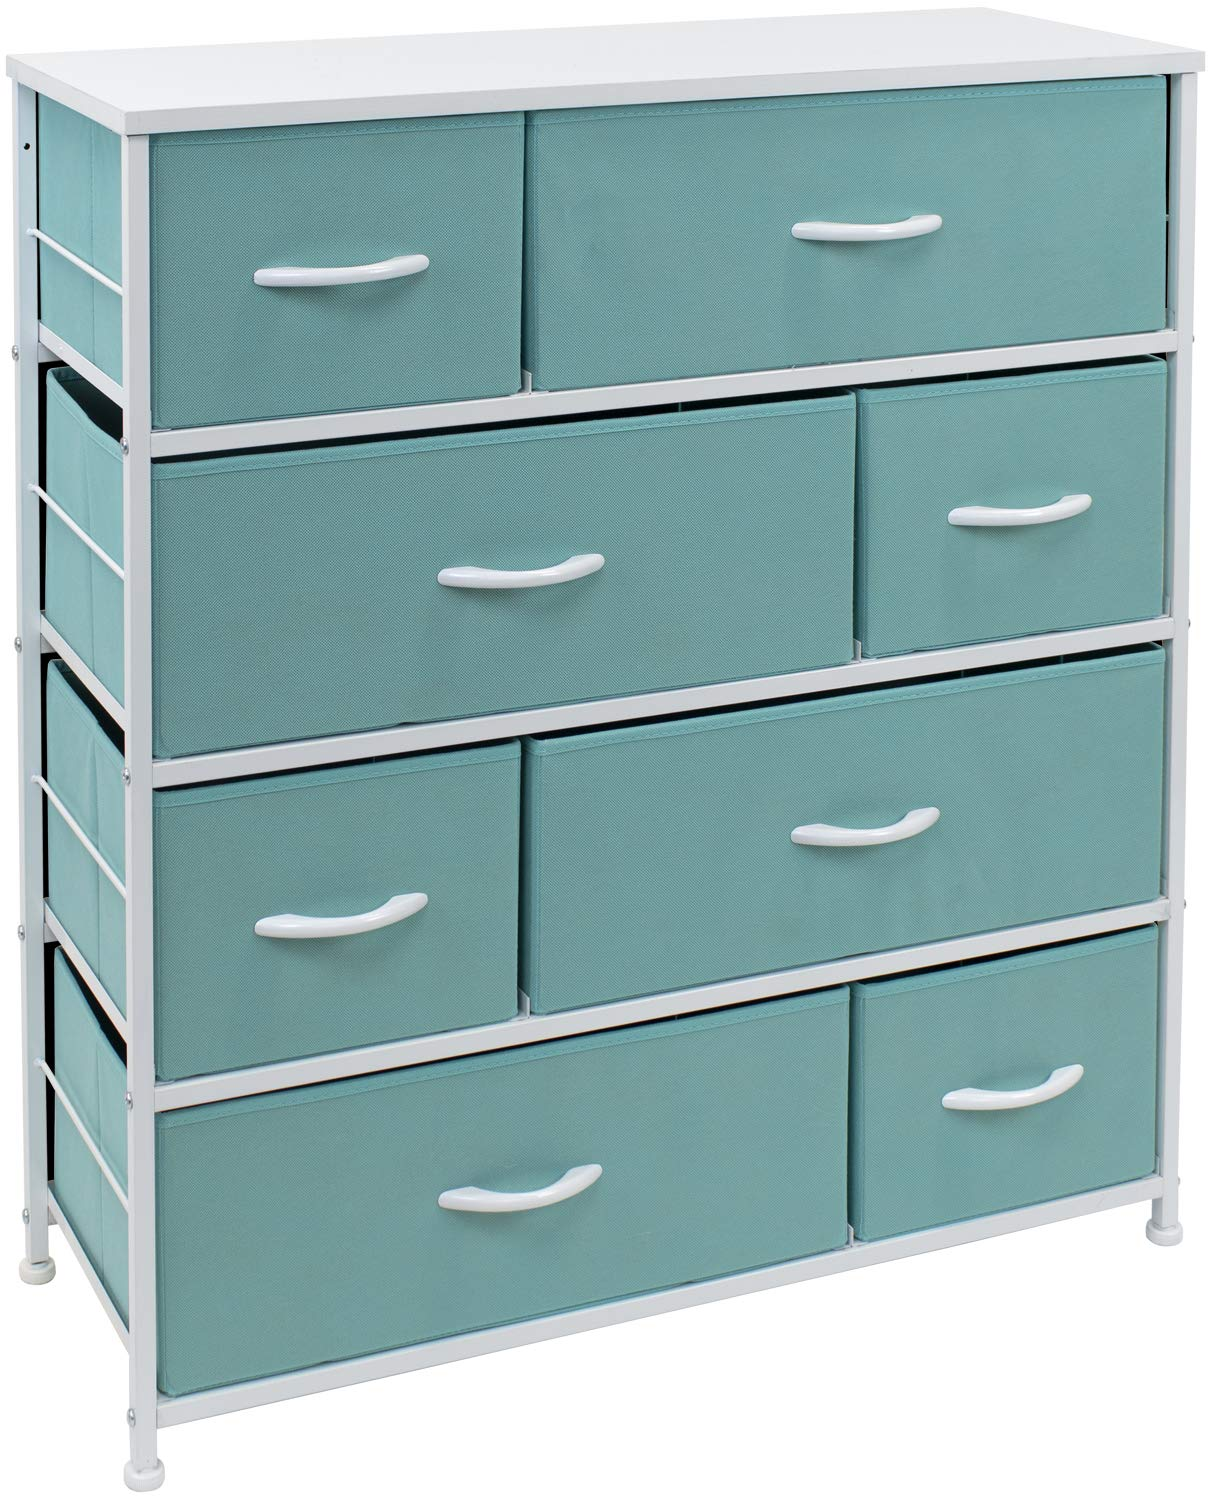 College Dorm Wood Top Sorbus Dresser with 9 Drawers Bedroom Accessories Bedside Furniture /& Night Stand End Table Dresser for Home Steel Frame Aqua Office